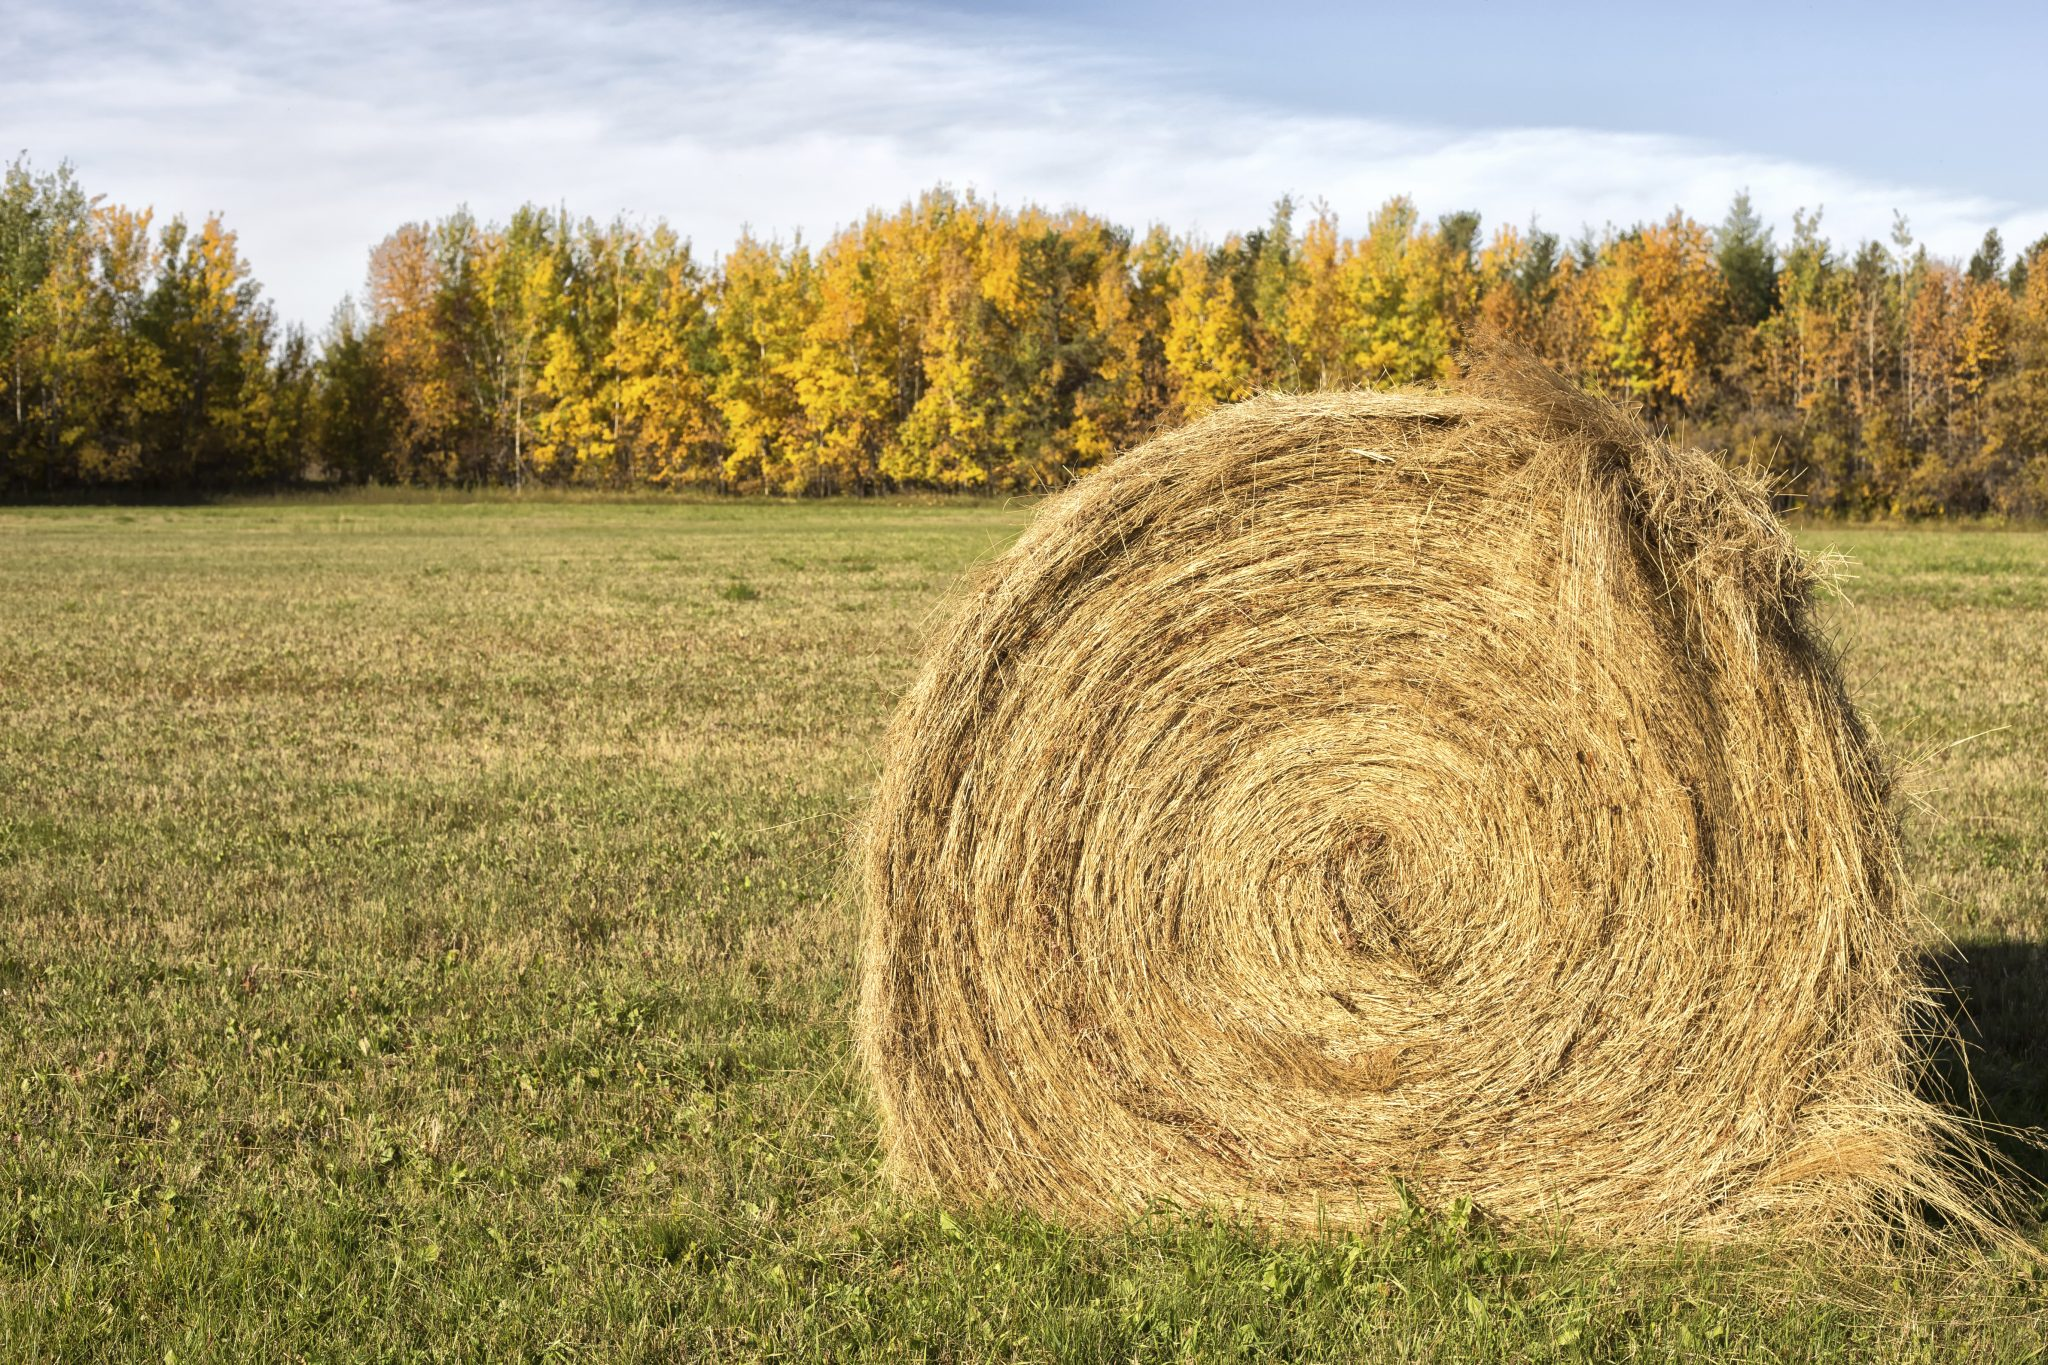 Round bale of hay in a field.